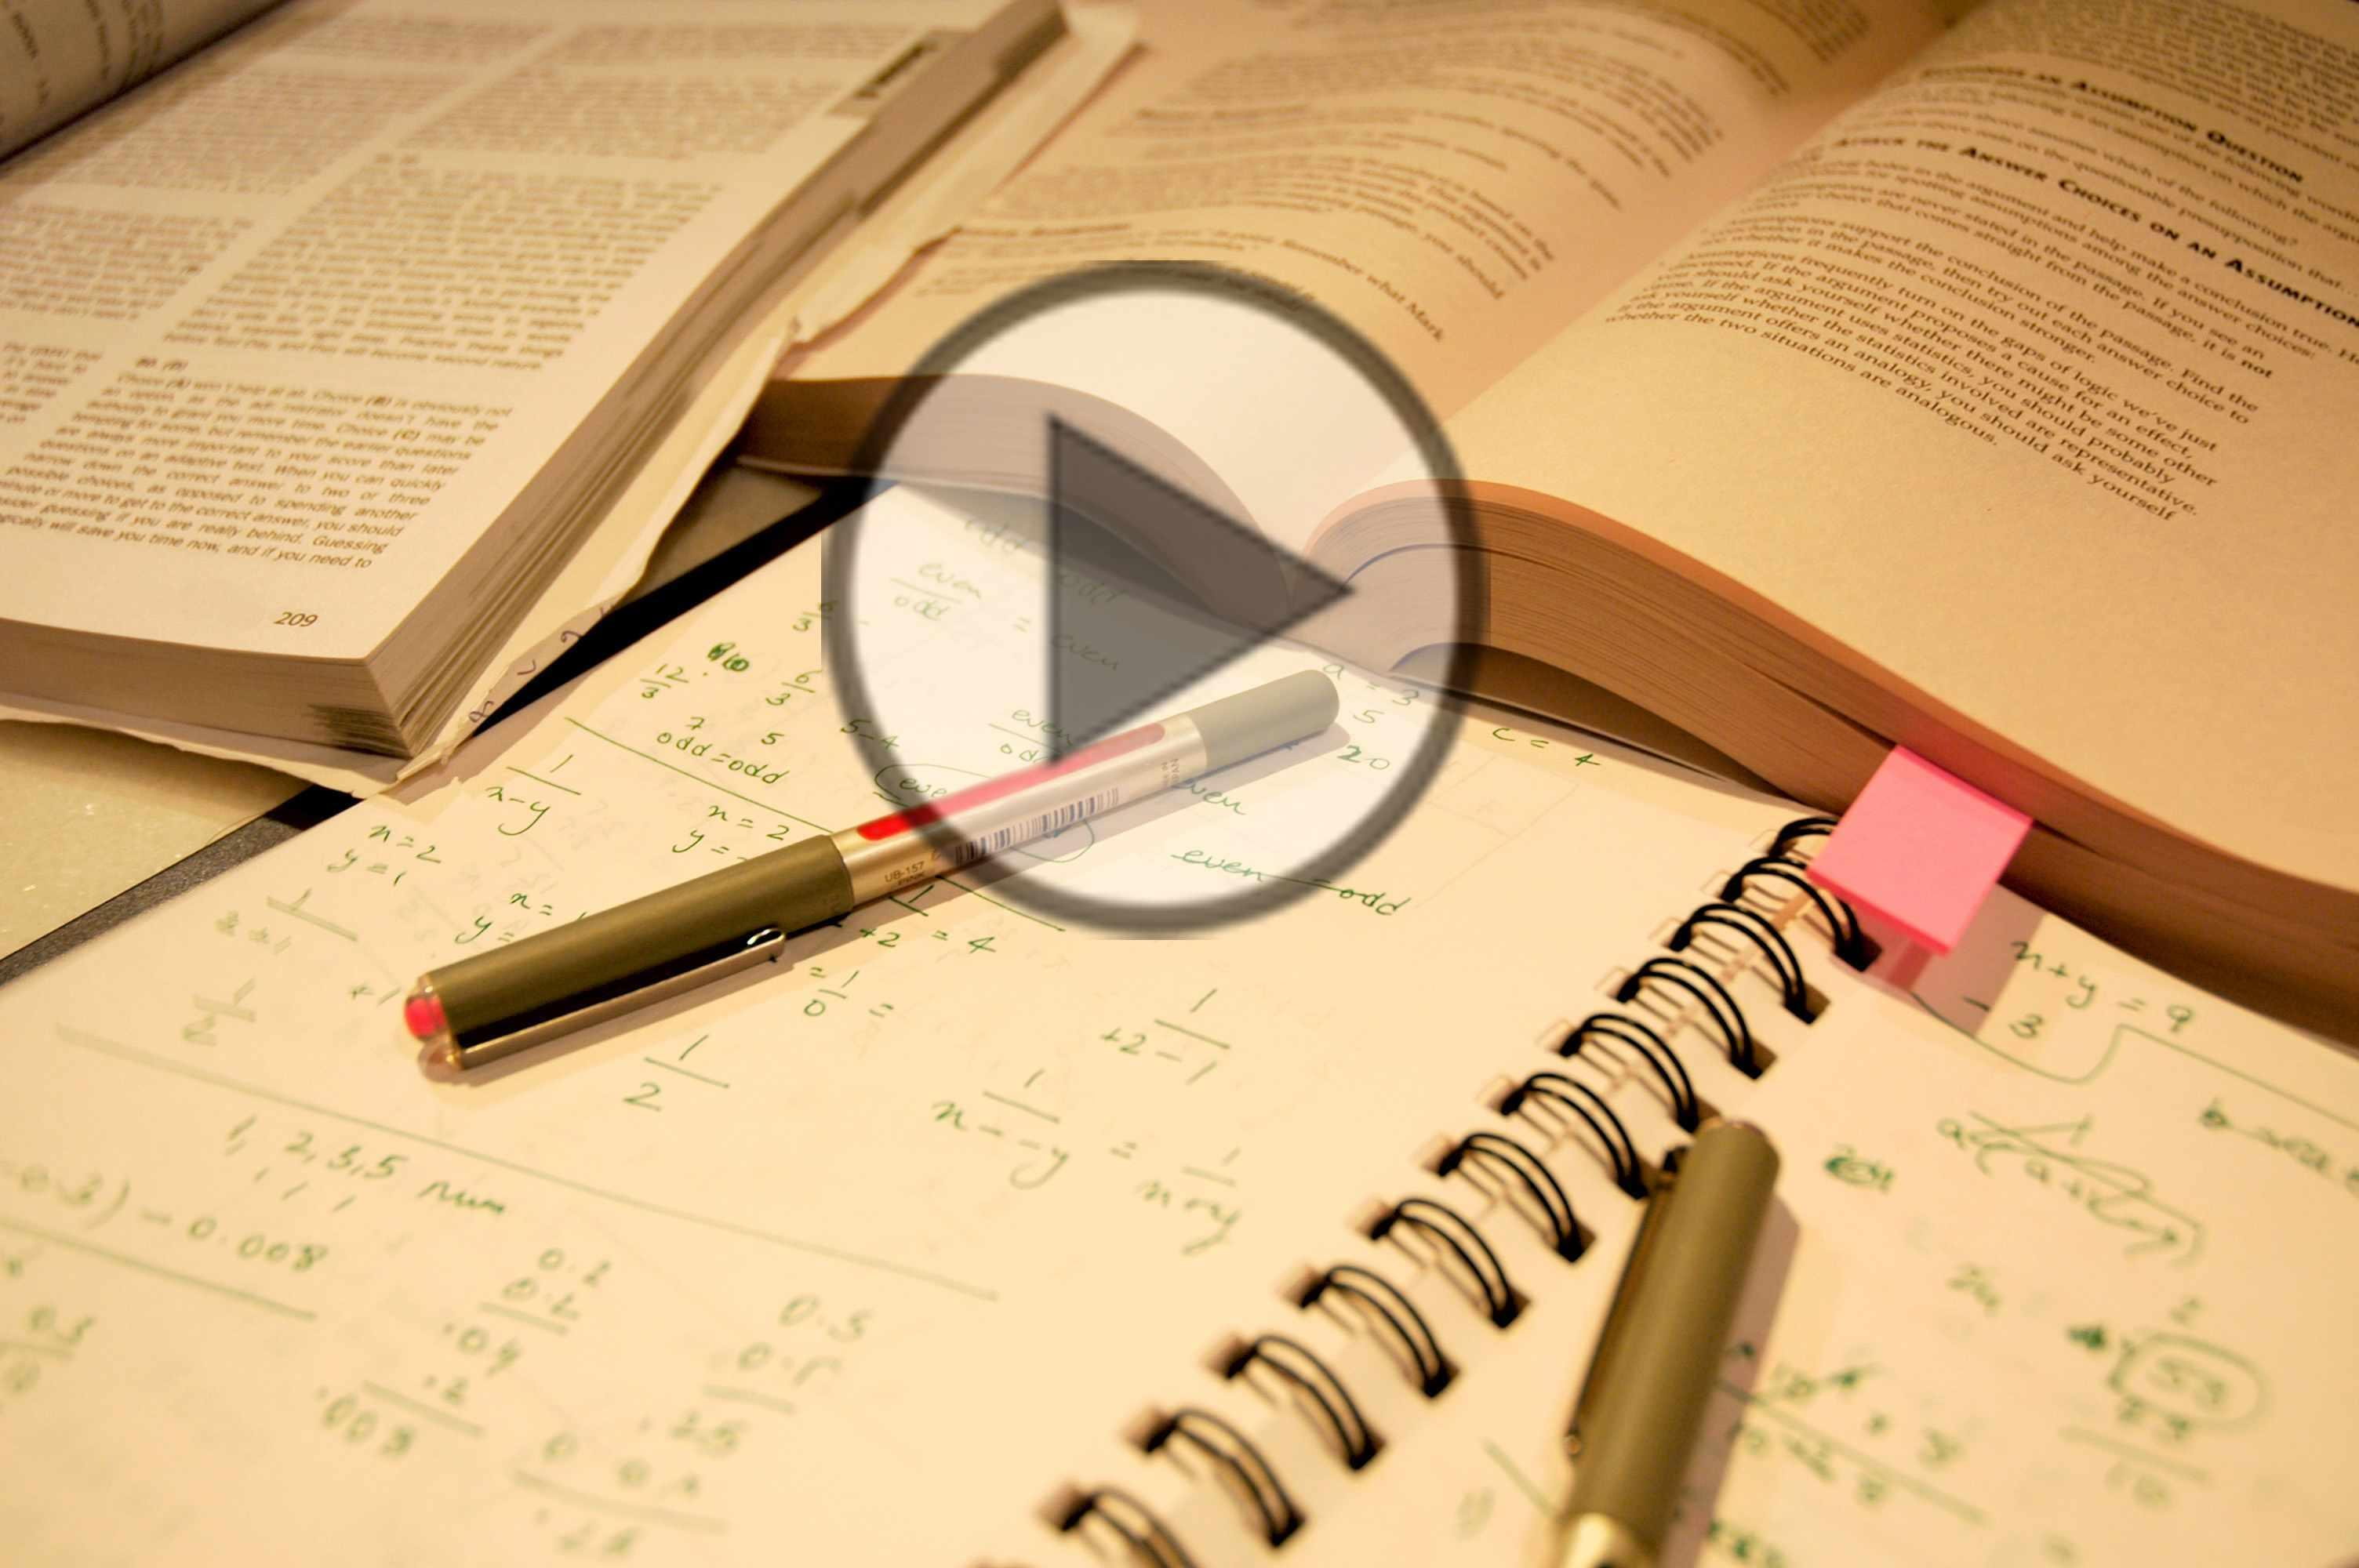 practicePTE, Reading & Writing: Fill in the blanks, PTE, Exam, practice, Test, Pattern, online